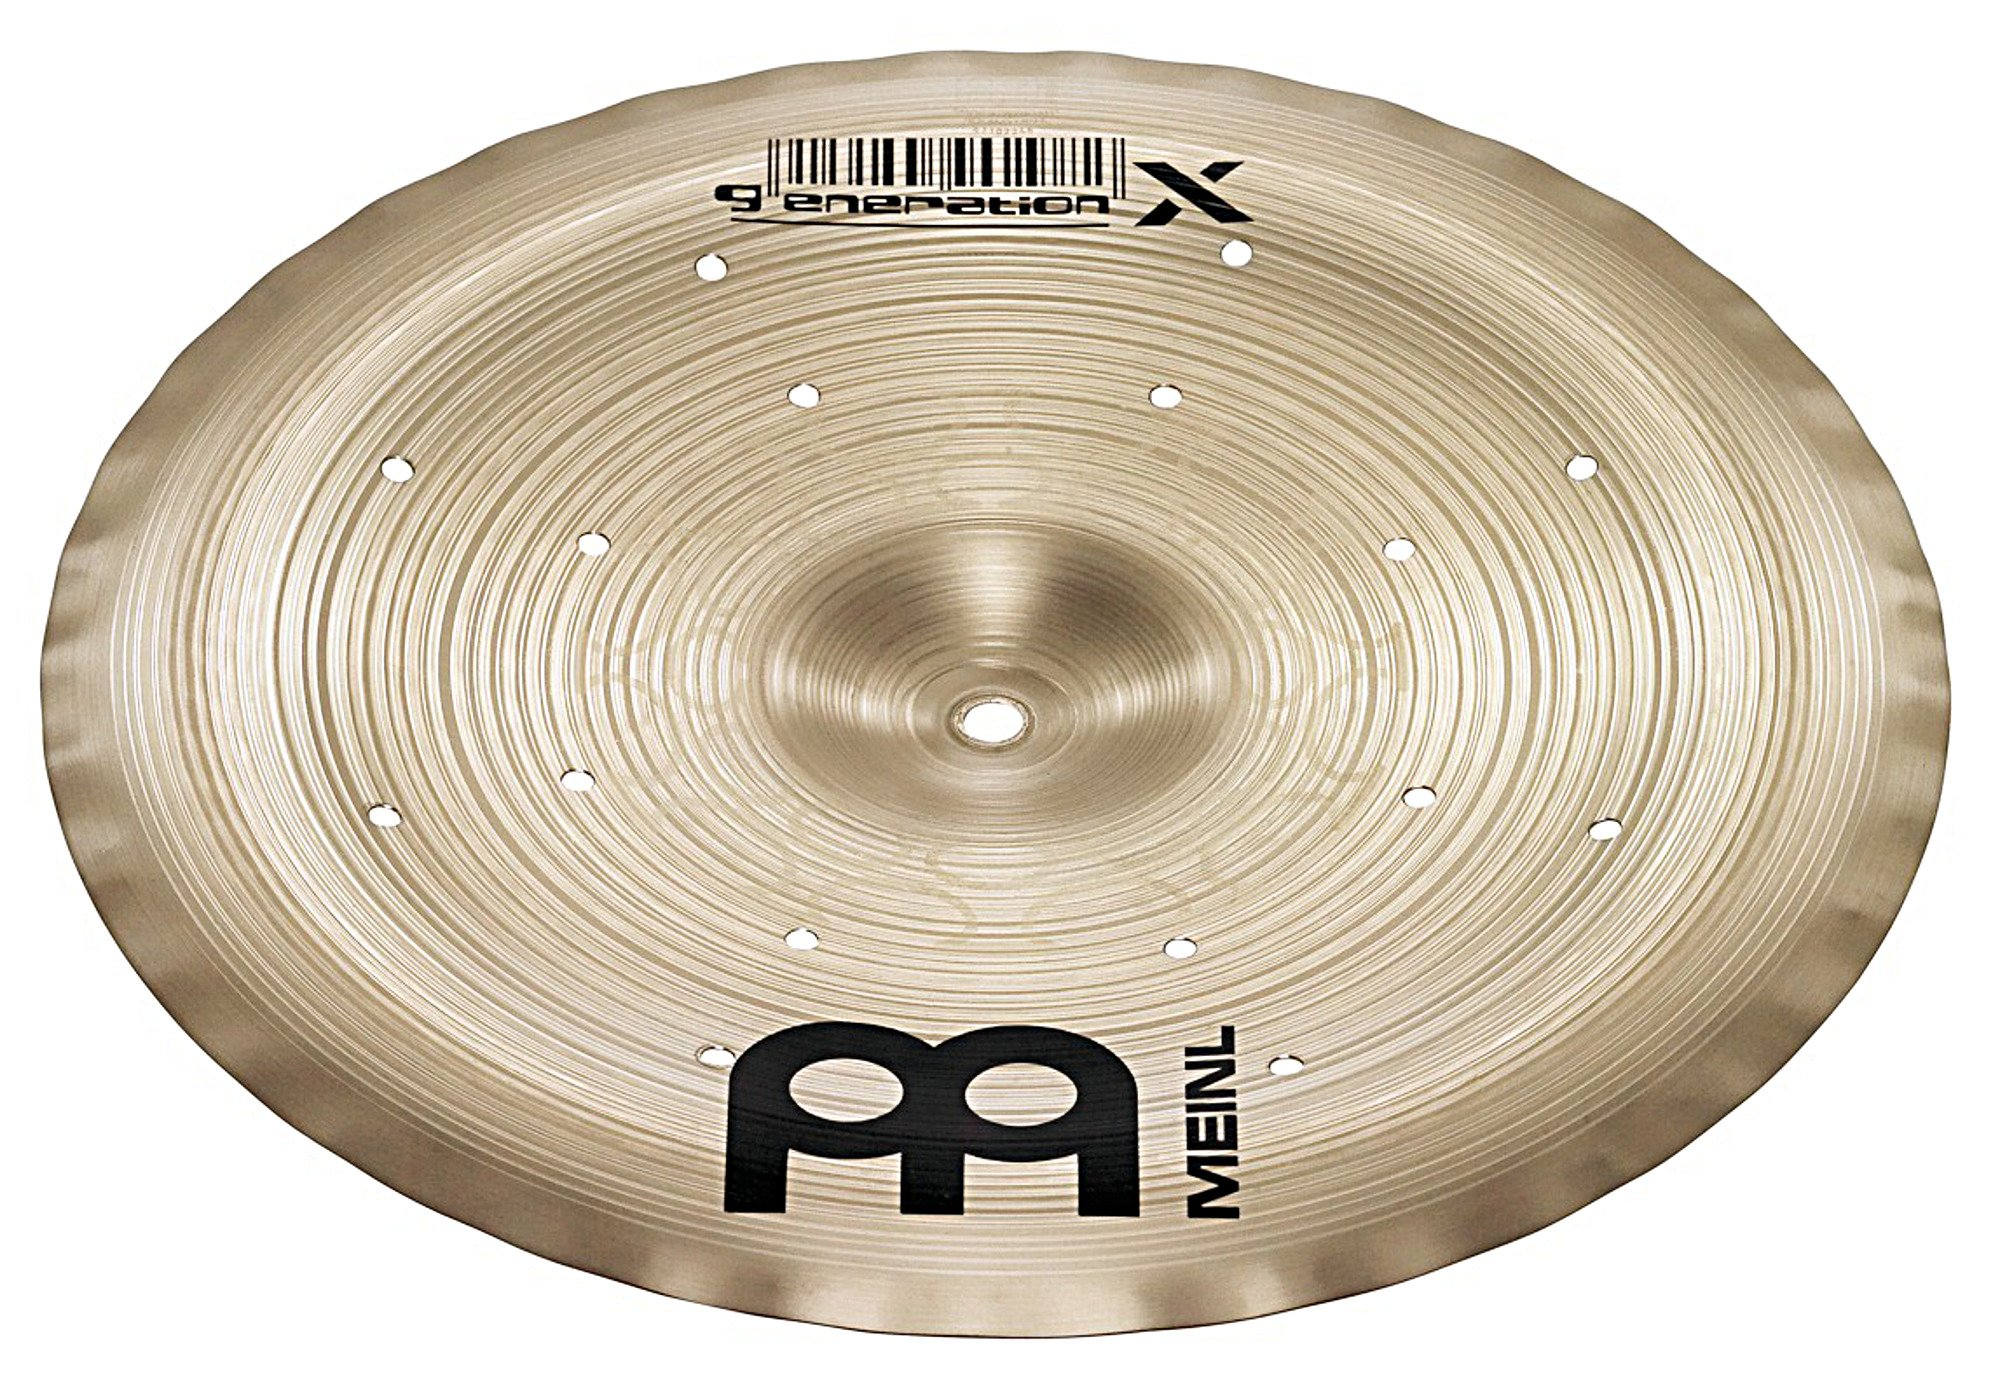 Meinl Cymbals GX-12FCH Generation-X 12-Inch Filter China Cymbal (VIDEO)